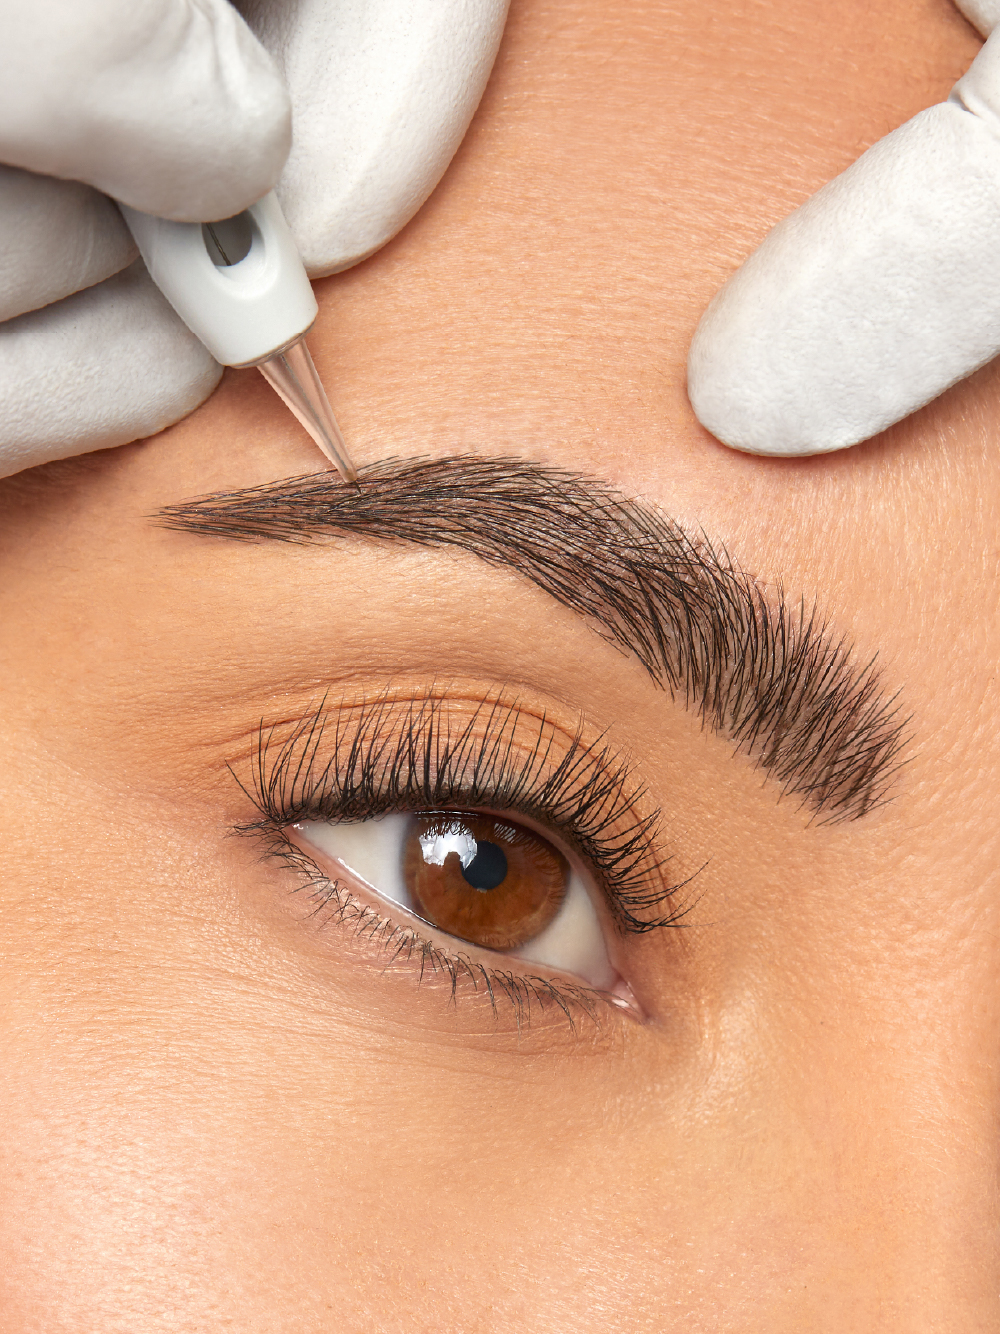 Permanent Makeup for Brows image